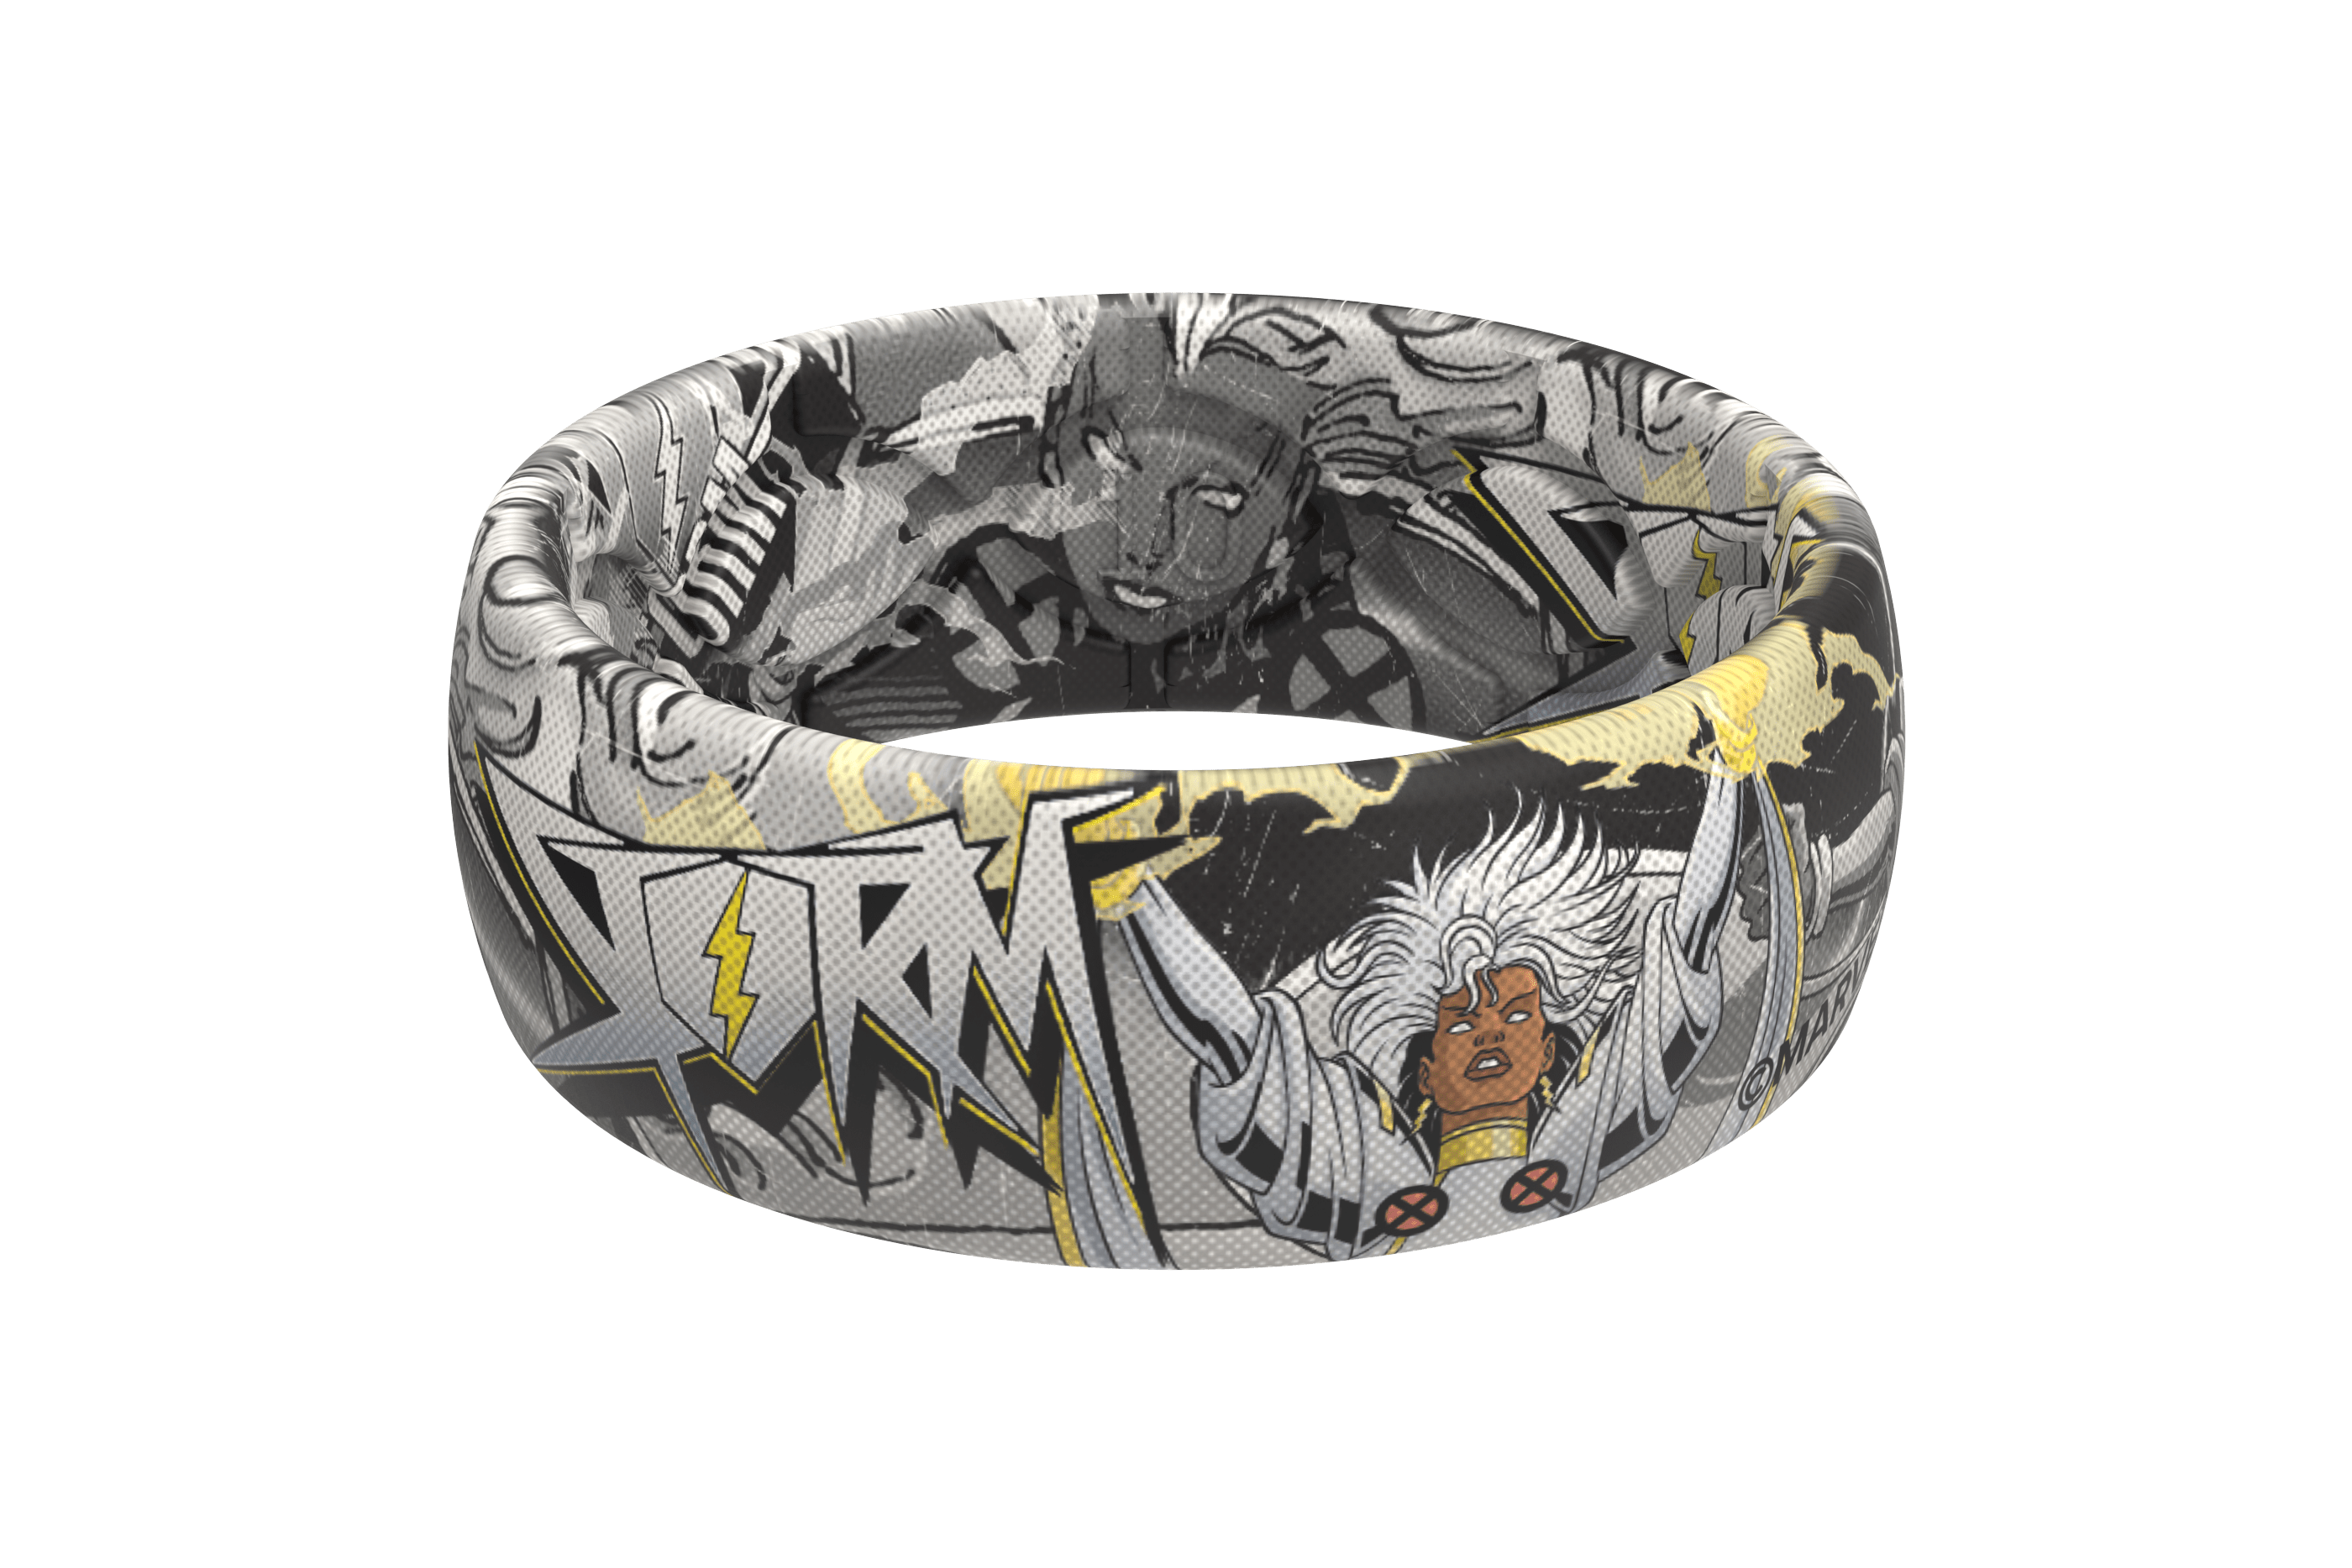 Storm Black and White Comic Ring viewed front on